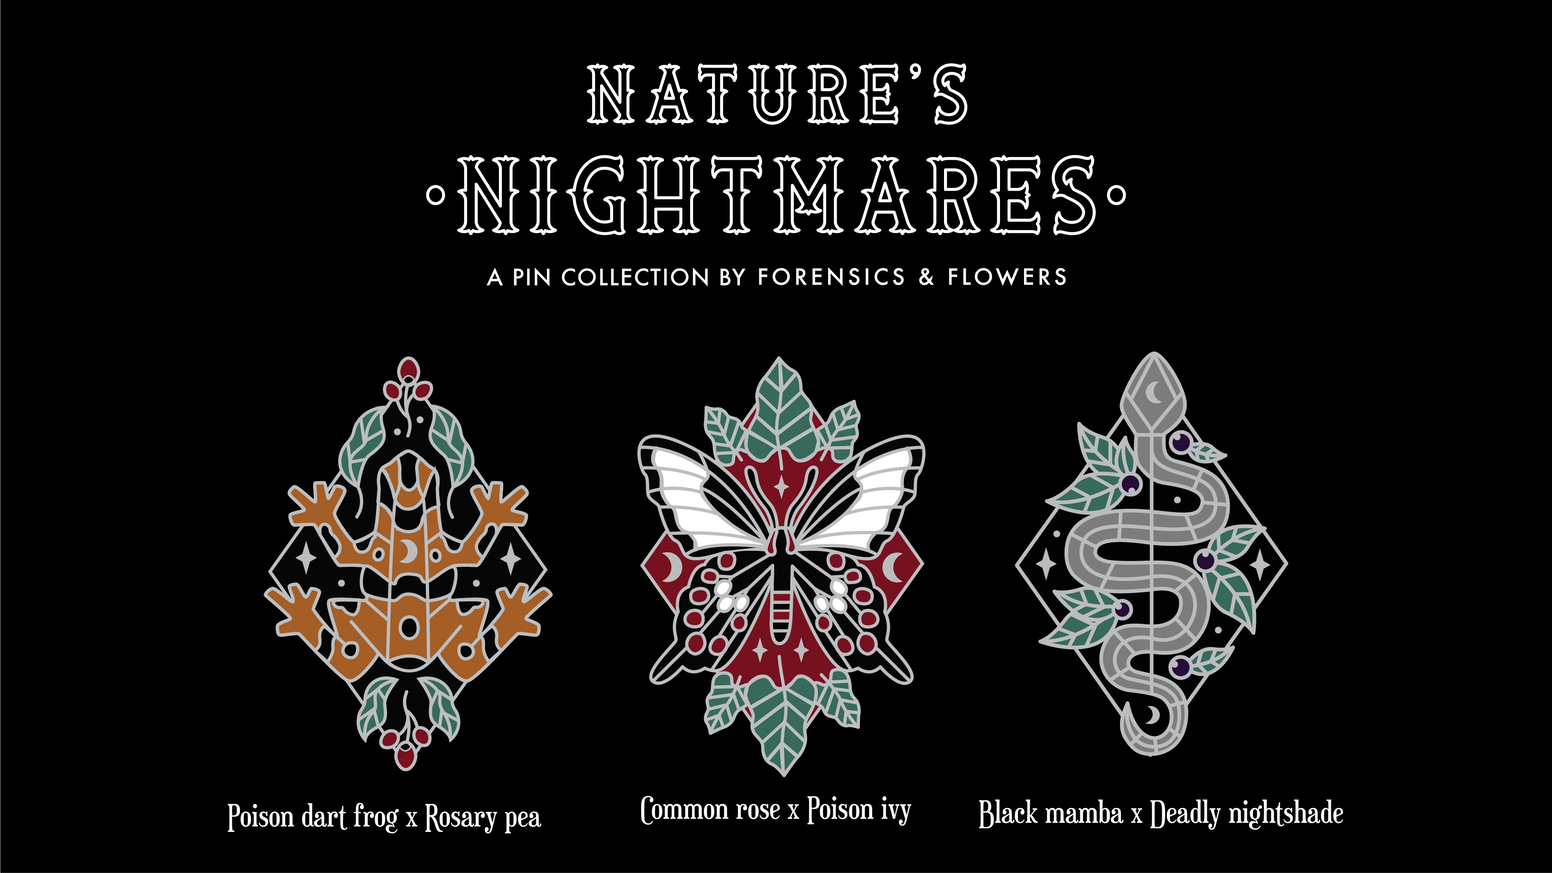 Set of 3 frightful flora and fauna enamel pins. Each pin pairs a poisonous animal with a poisonous plant in a dark magic style.